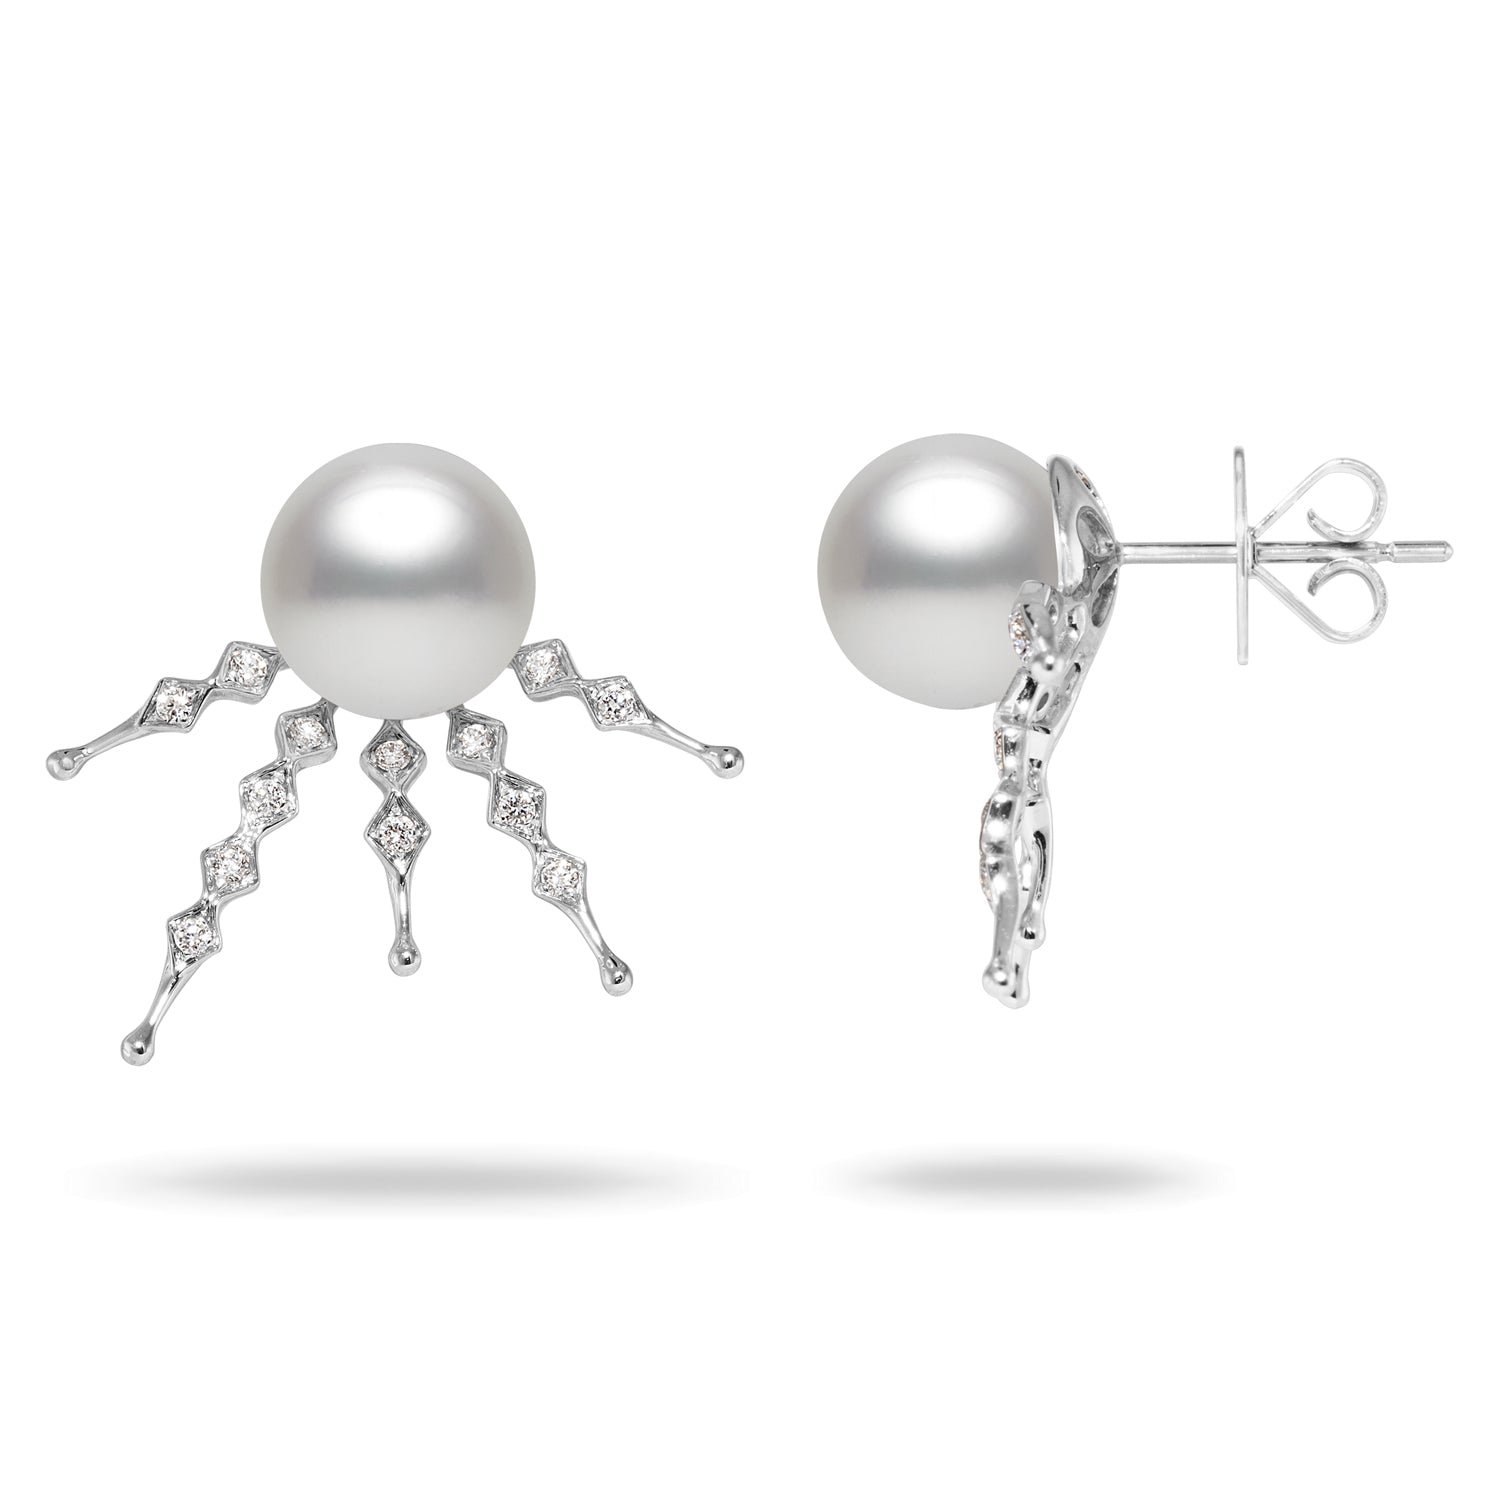 10-11mm White South Sea Pearl and Diamond Earrings